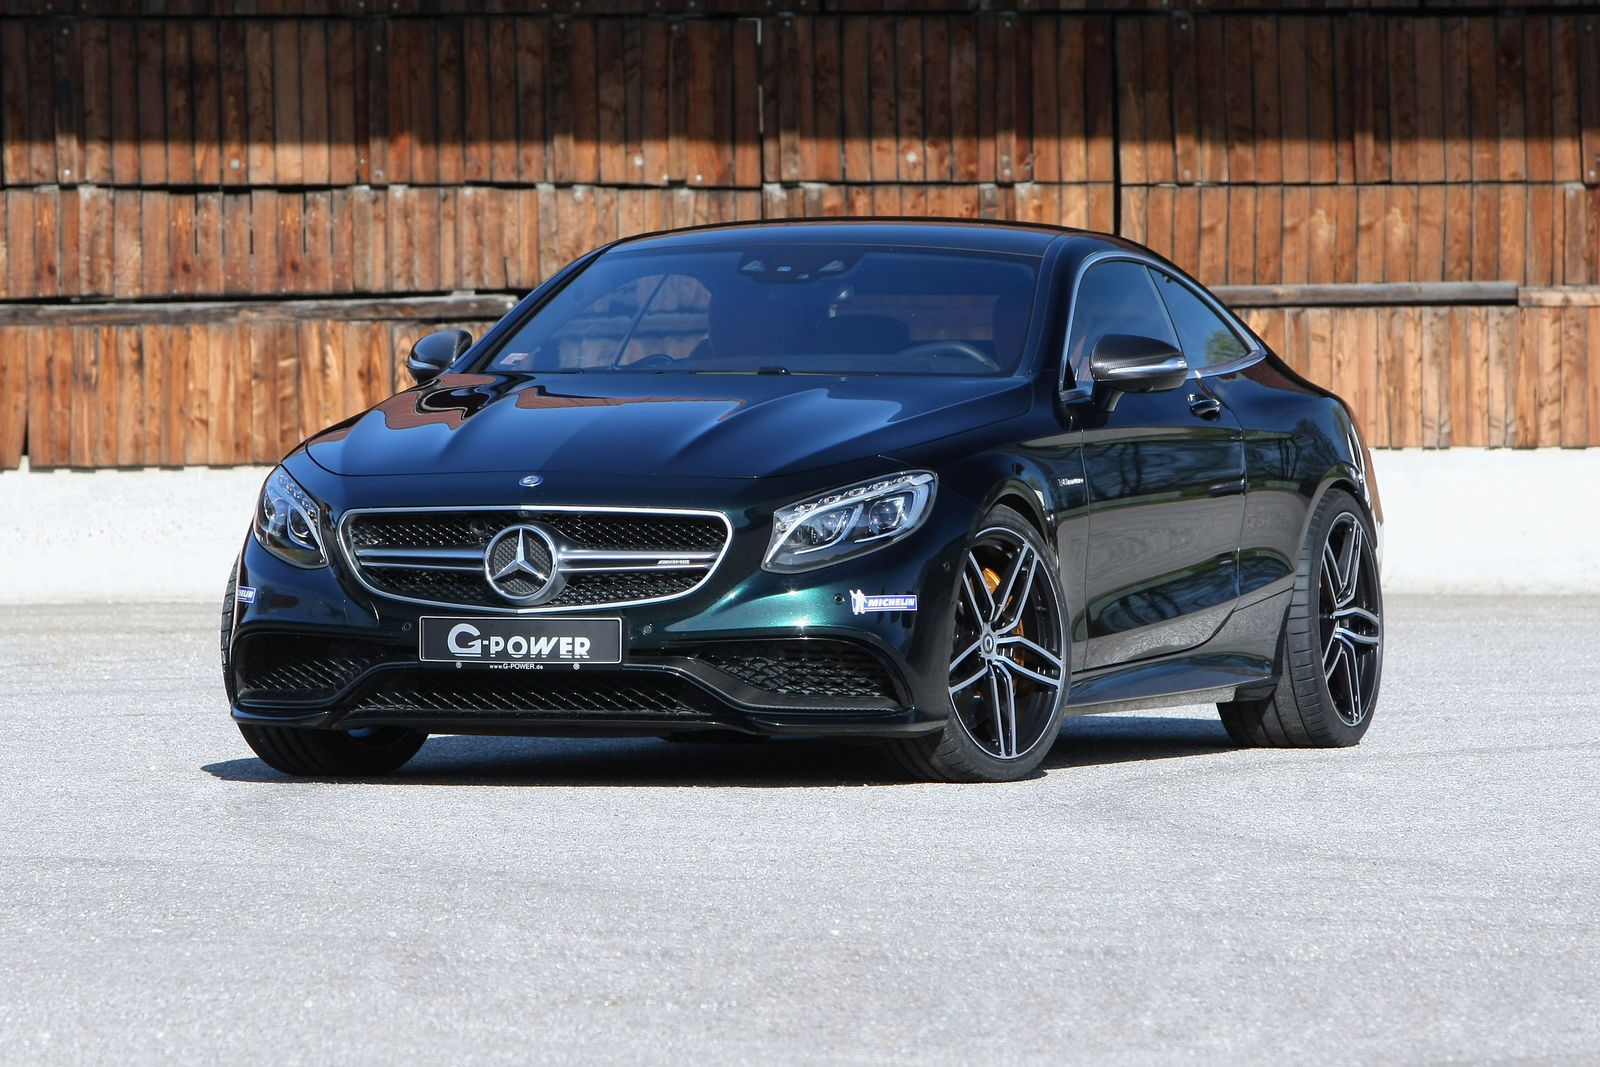 G Power S 695 Hp Merc Amg S63 Coupe Is What You Call A Supercar メルセデスベンツ Amg メルセデスamg スポーツカー